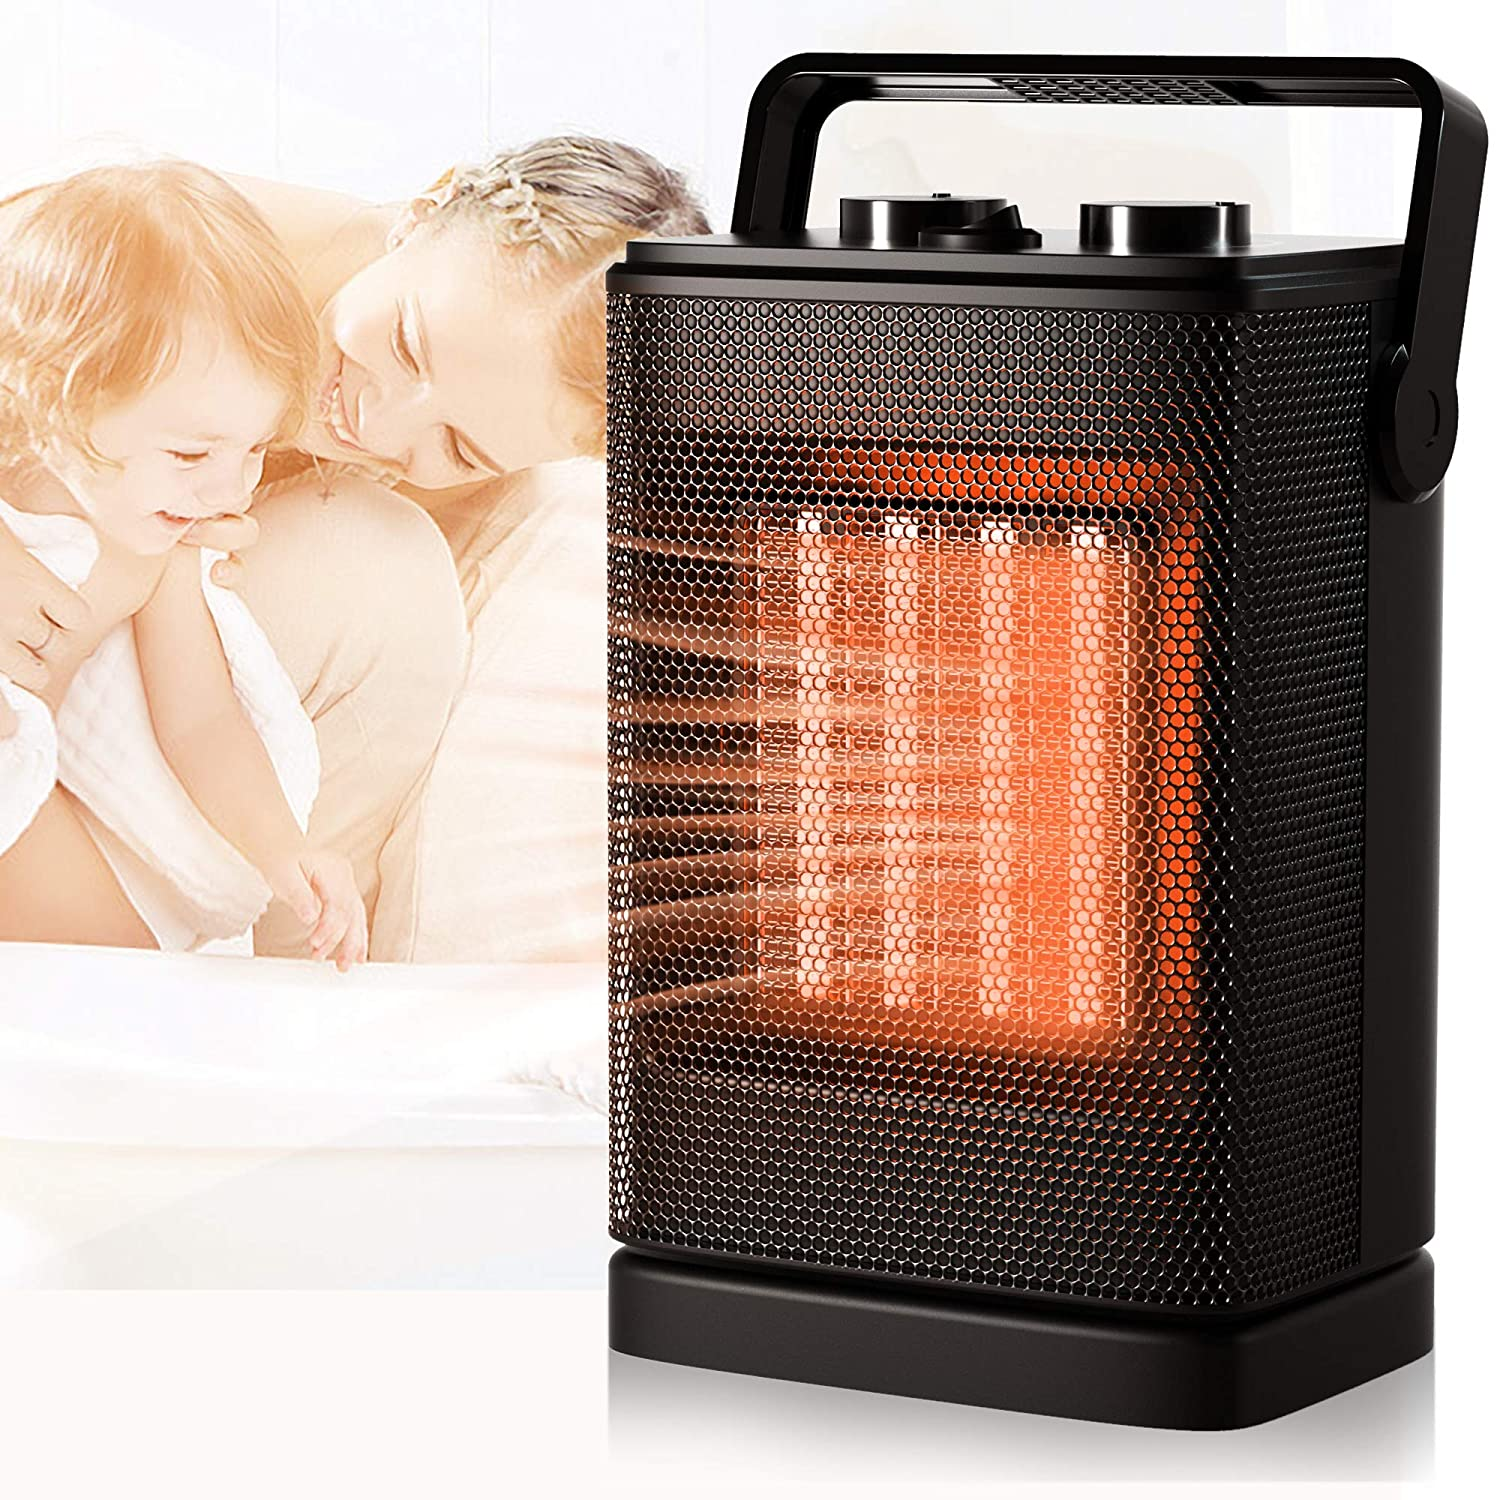 Portable Space Heater, Mini Electric Heater for Office Desk Home Bedroom Indoor Use, 1200W Ceramic Small Heater with Adjustable Thermostat, Overheat Tip-Over Protection